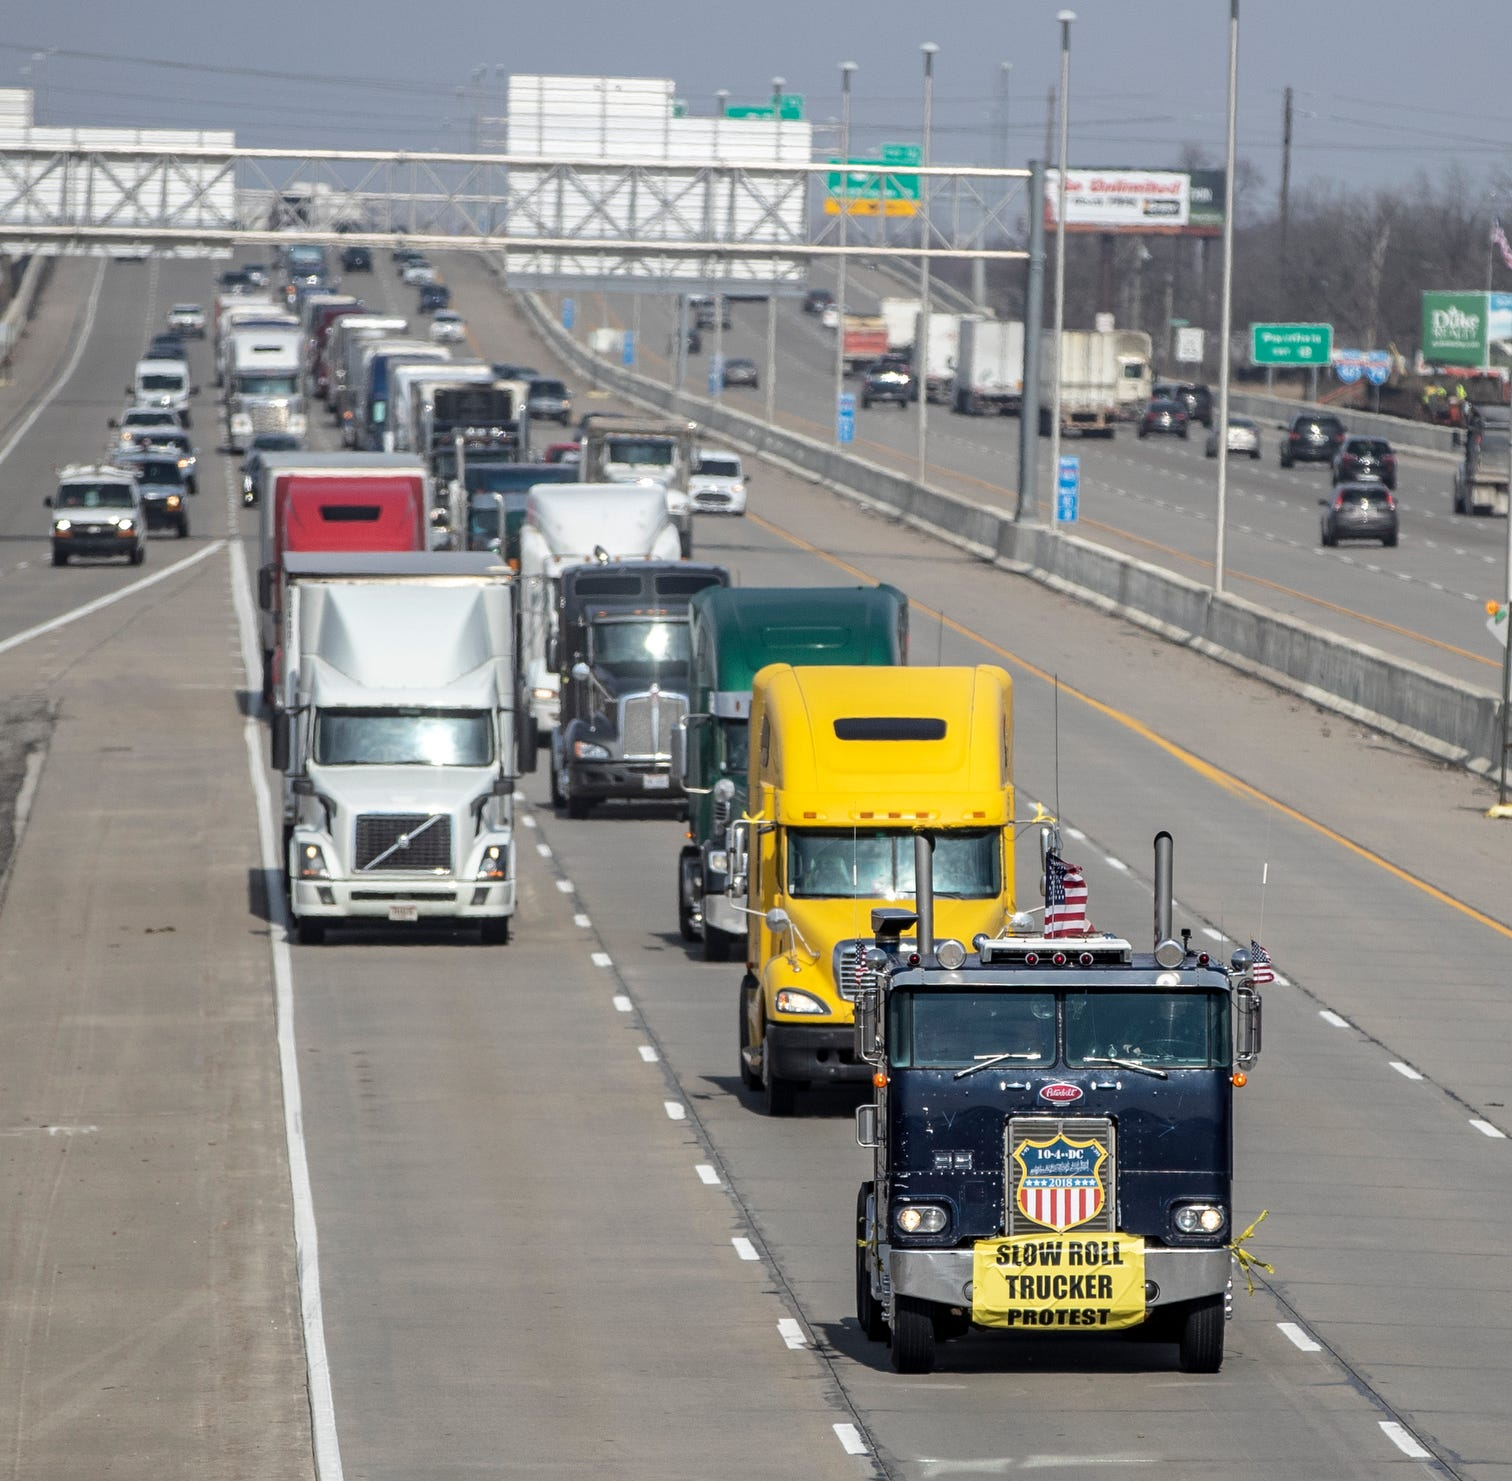 Truck drivers make two 45 mph loops around I-465 in slow-roll protest